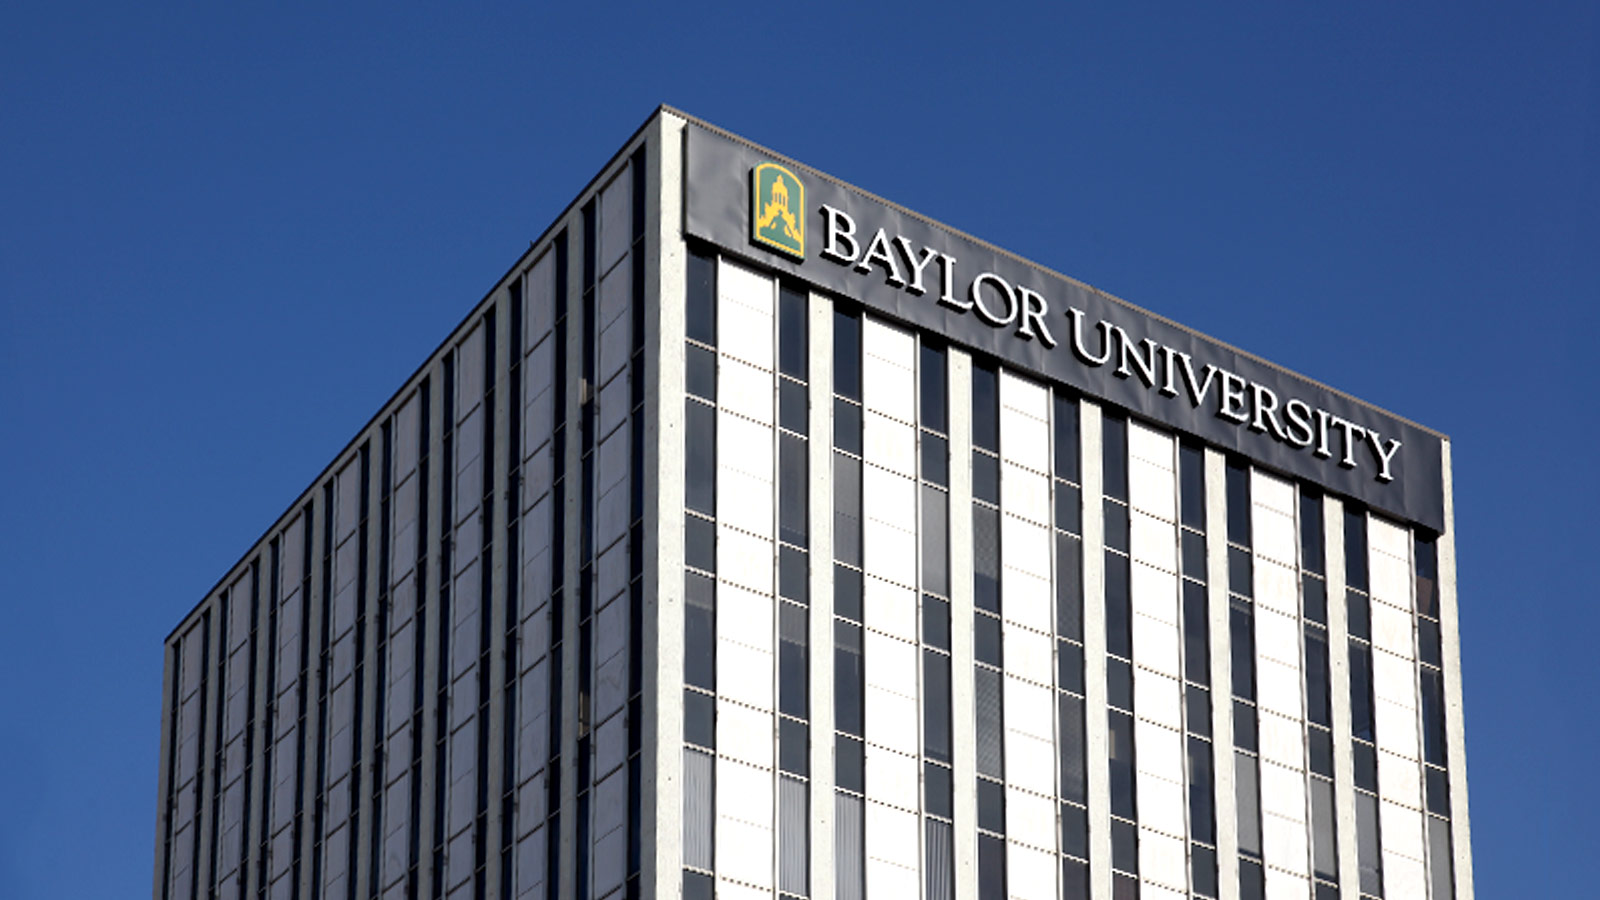 Baylor School of Social Work students learn about human dignity, the power of hope, the need for justice, caring as the foundation for effective change, and service that transforms lives and communities.